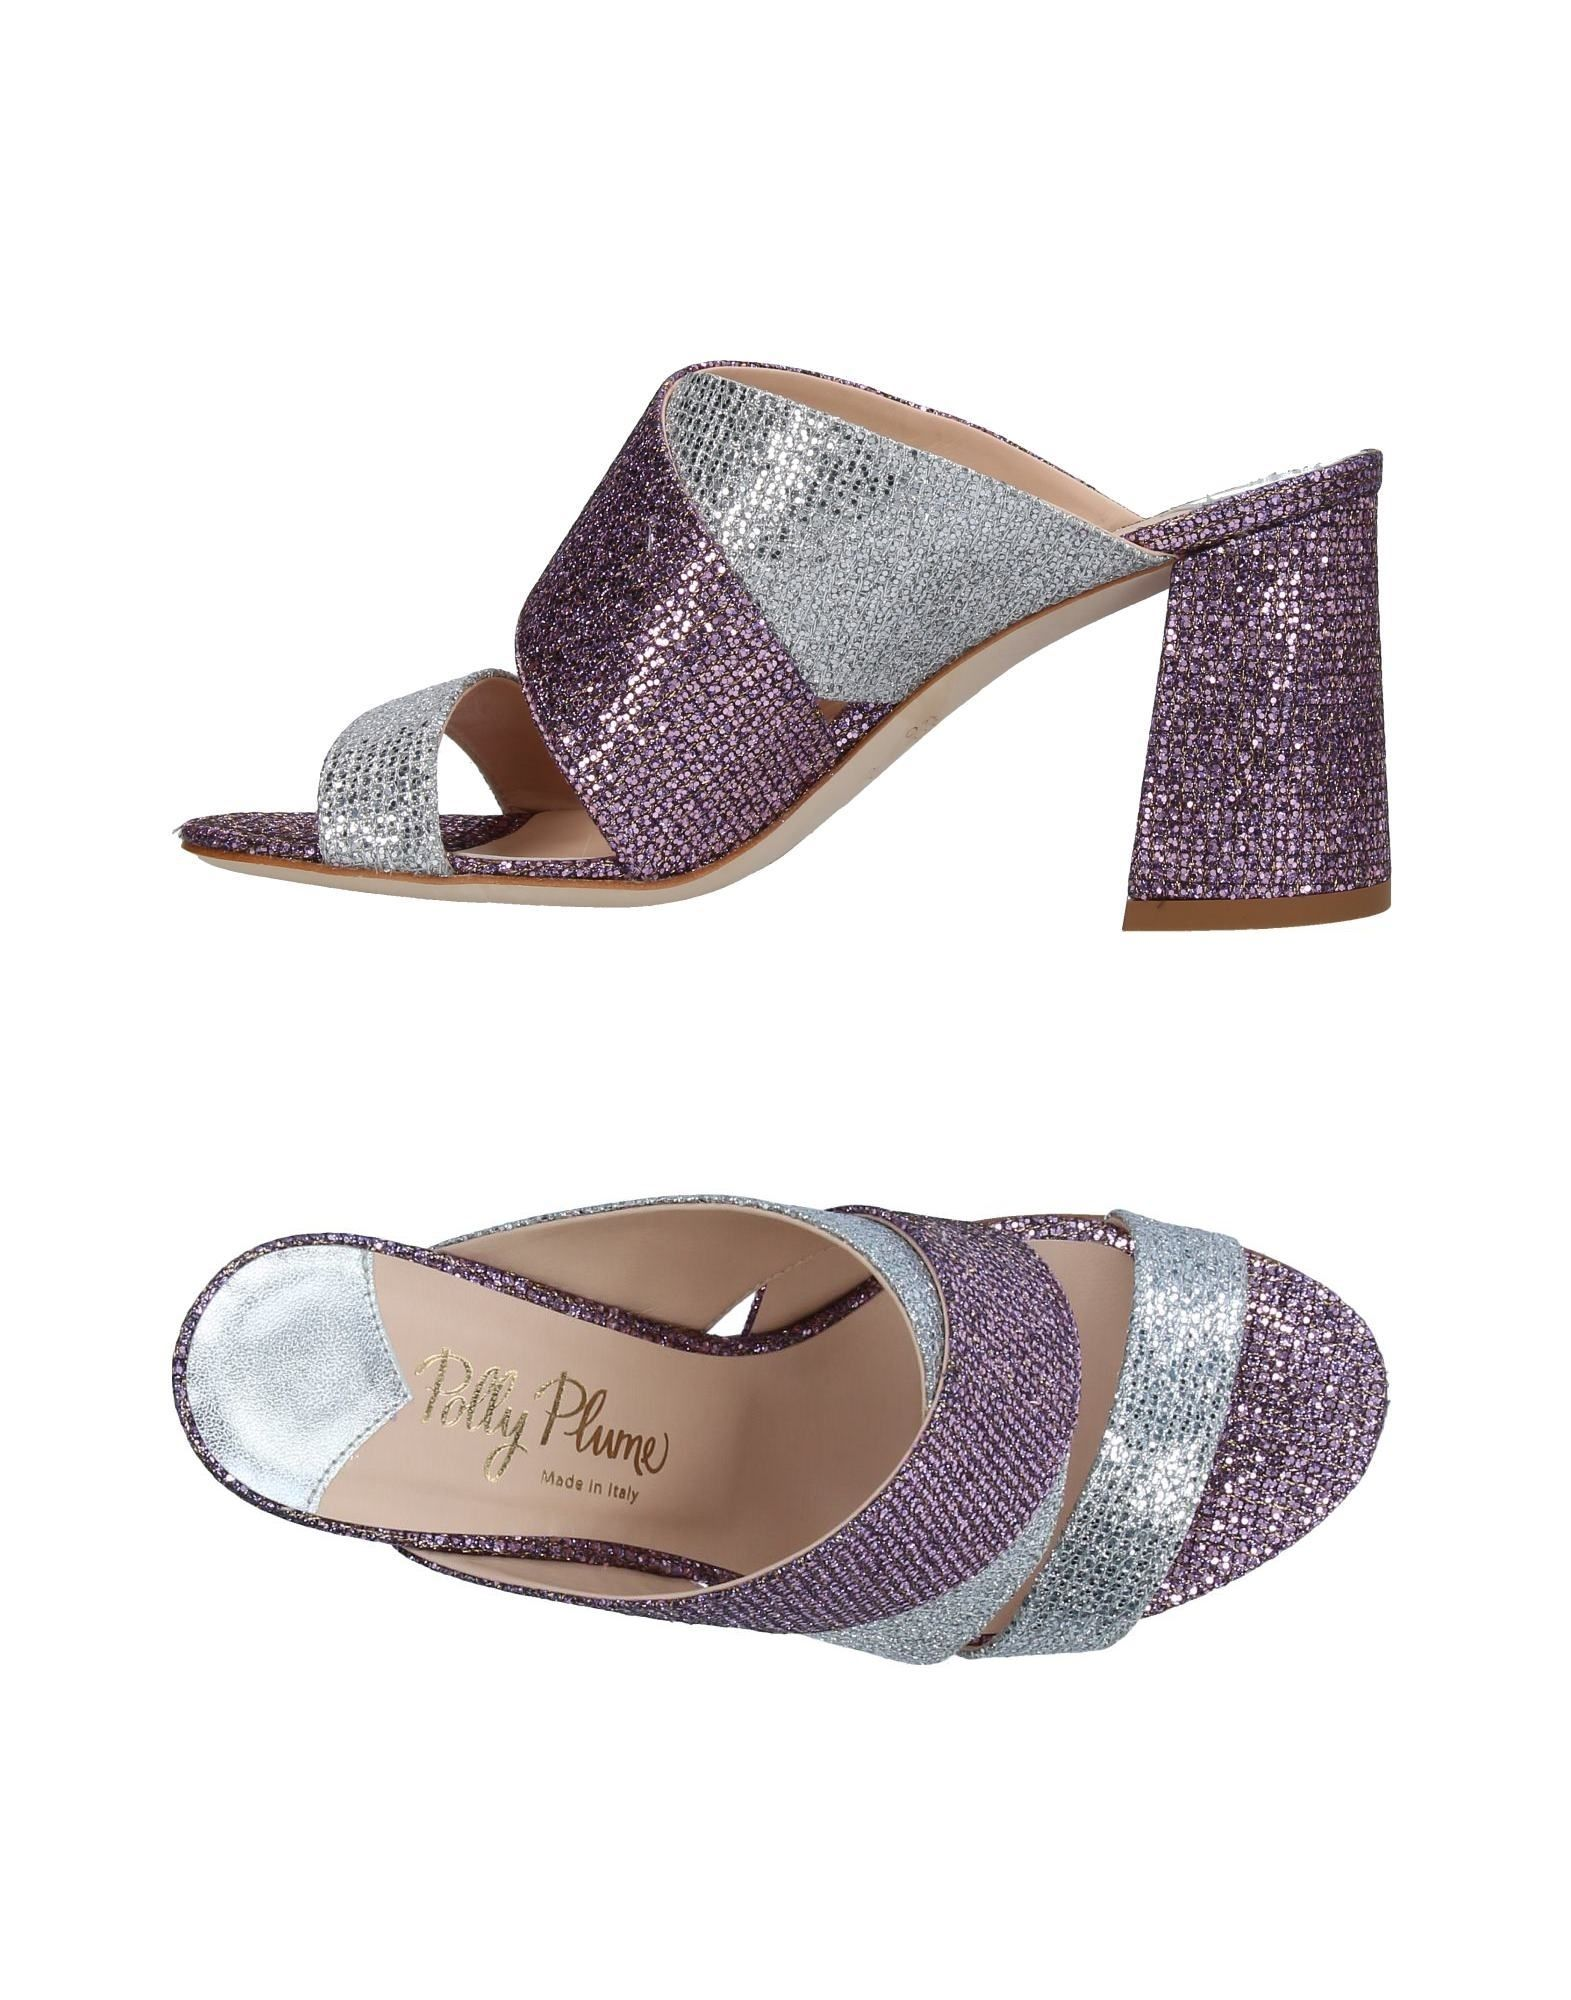 Sandales Polly Plume Femme - Sandales Polly Plume sur